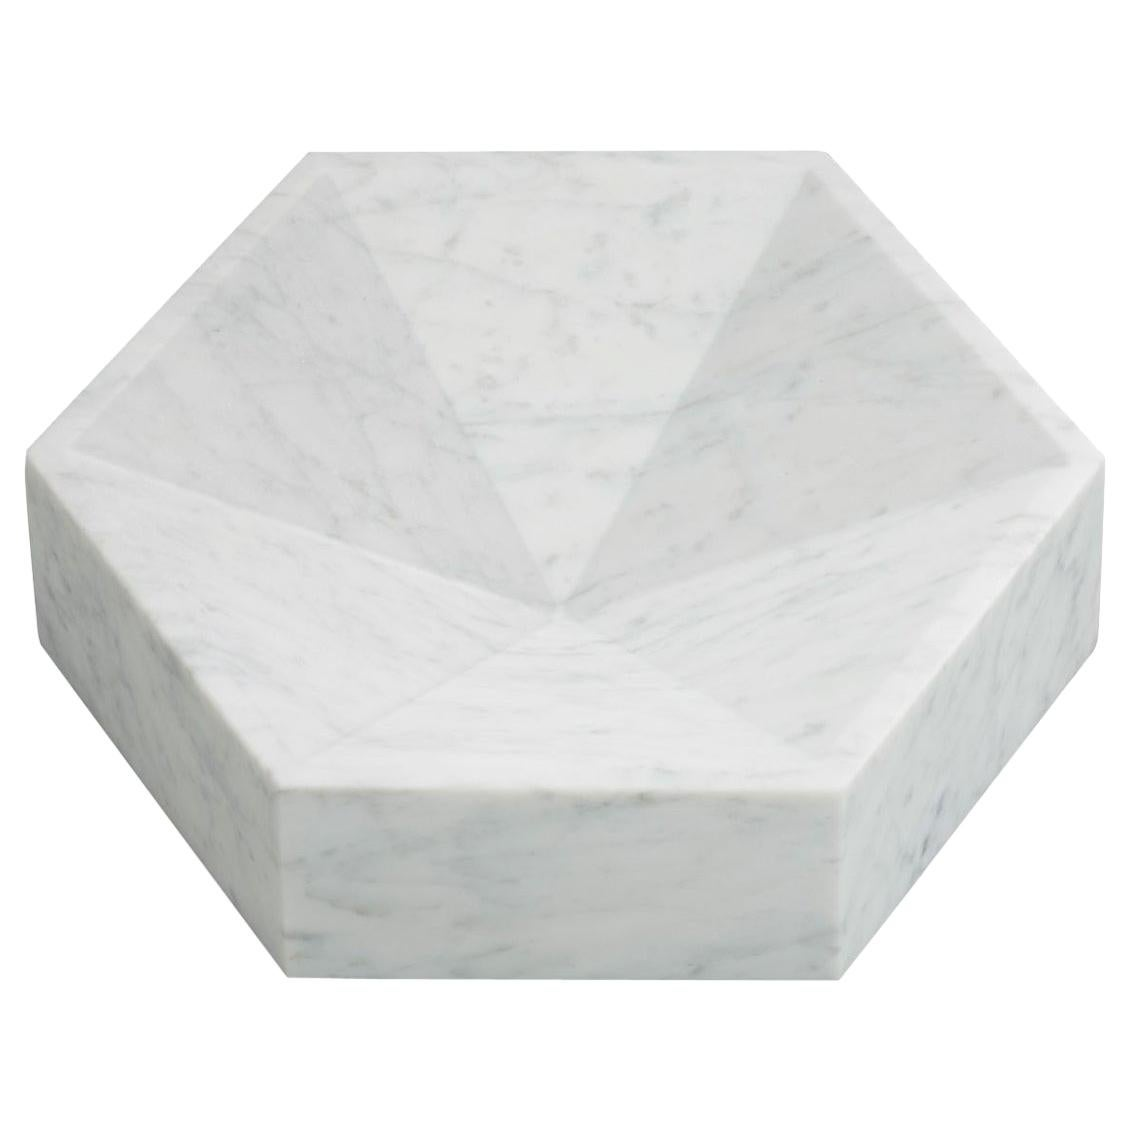 Hexagonal Constellation Bowl, Small Low in Carrara Marble, In Stock